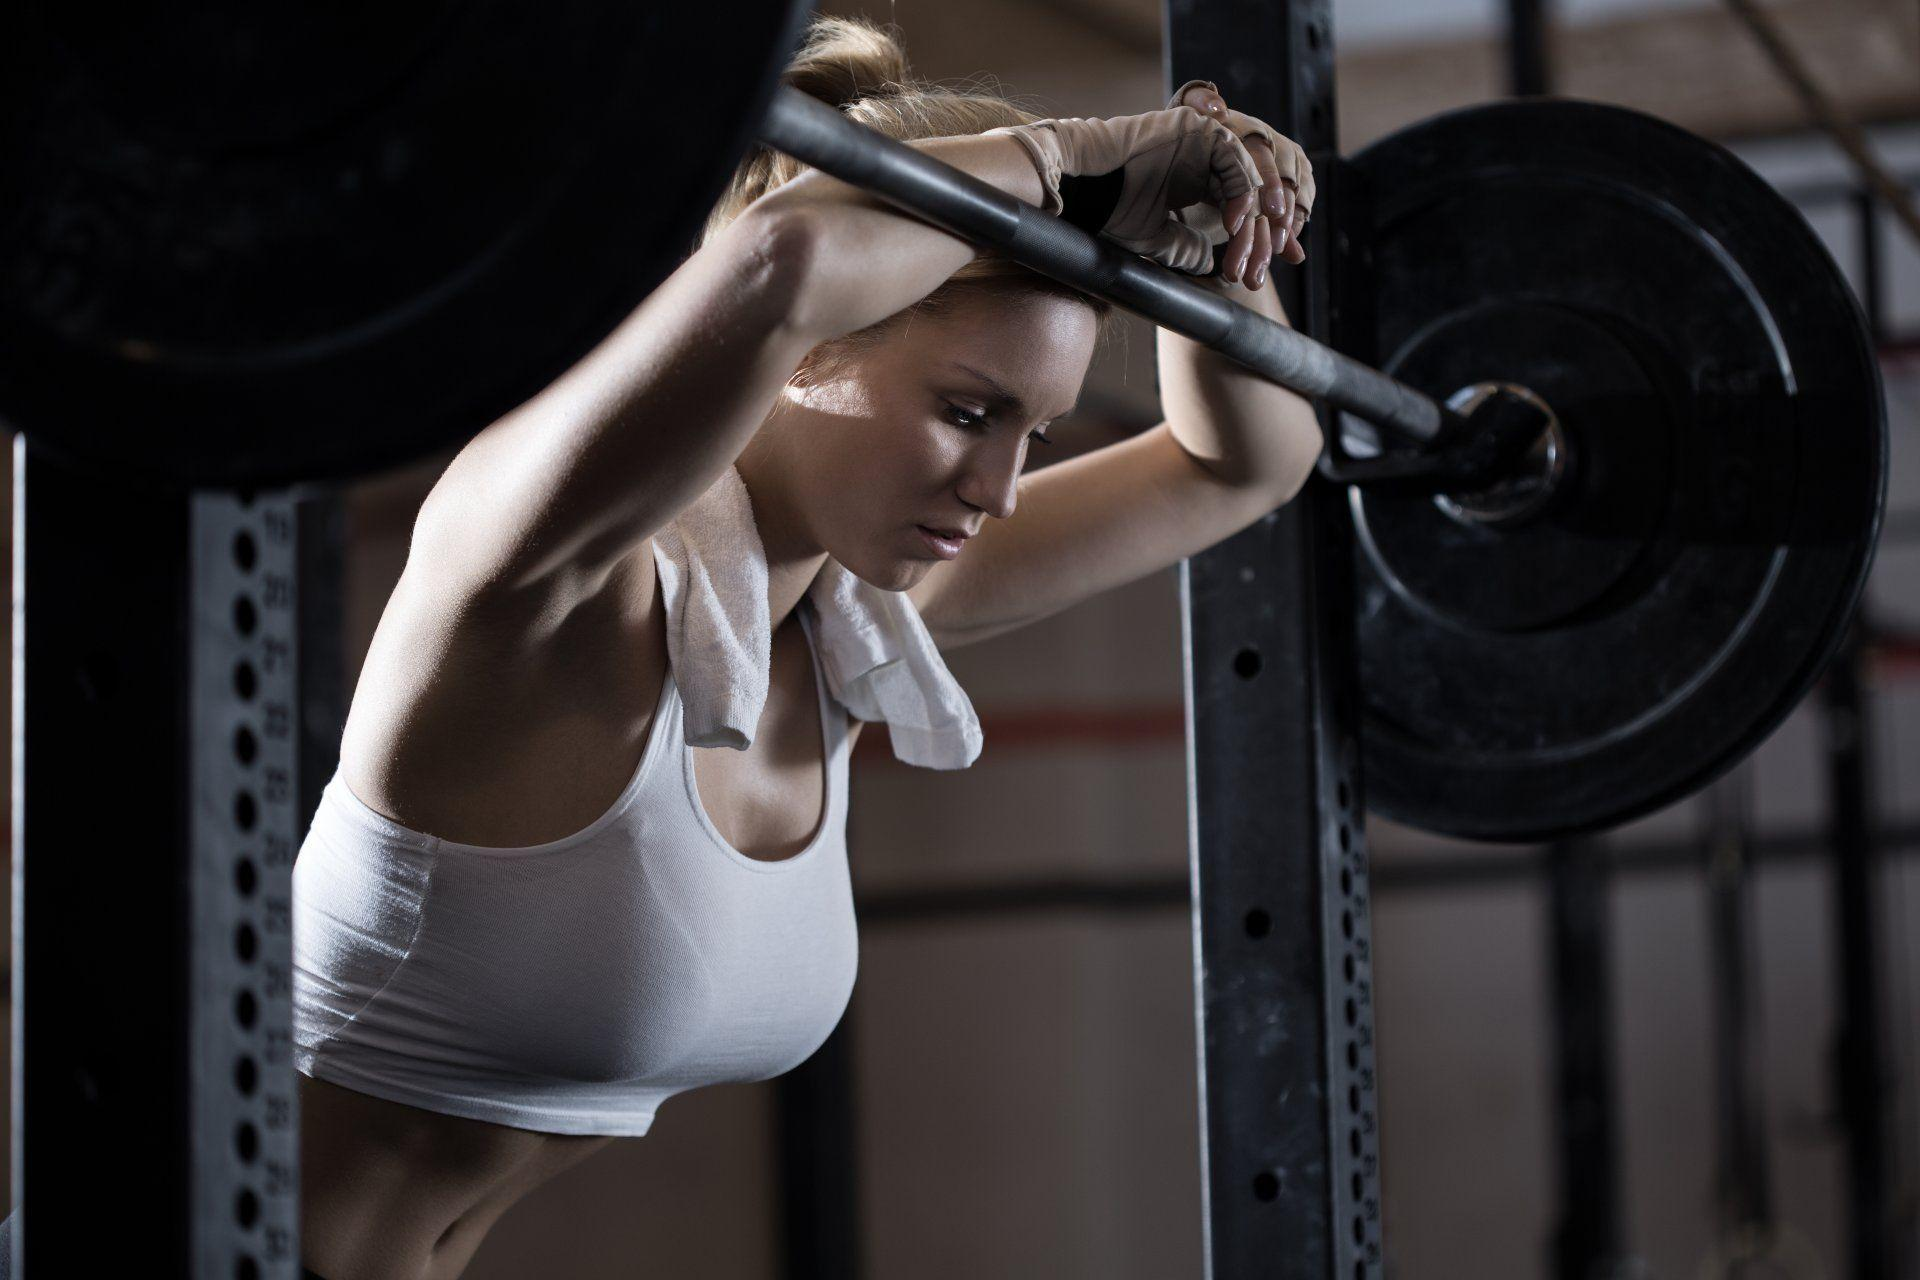 gym physical activity tiredness fatigue HD wallpaper